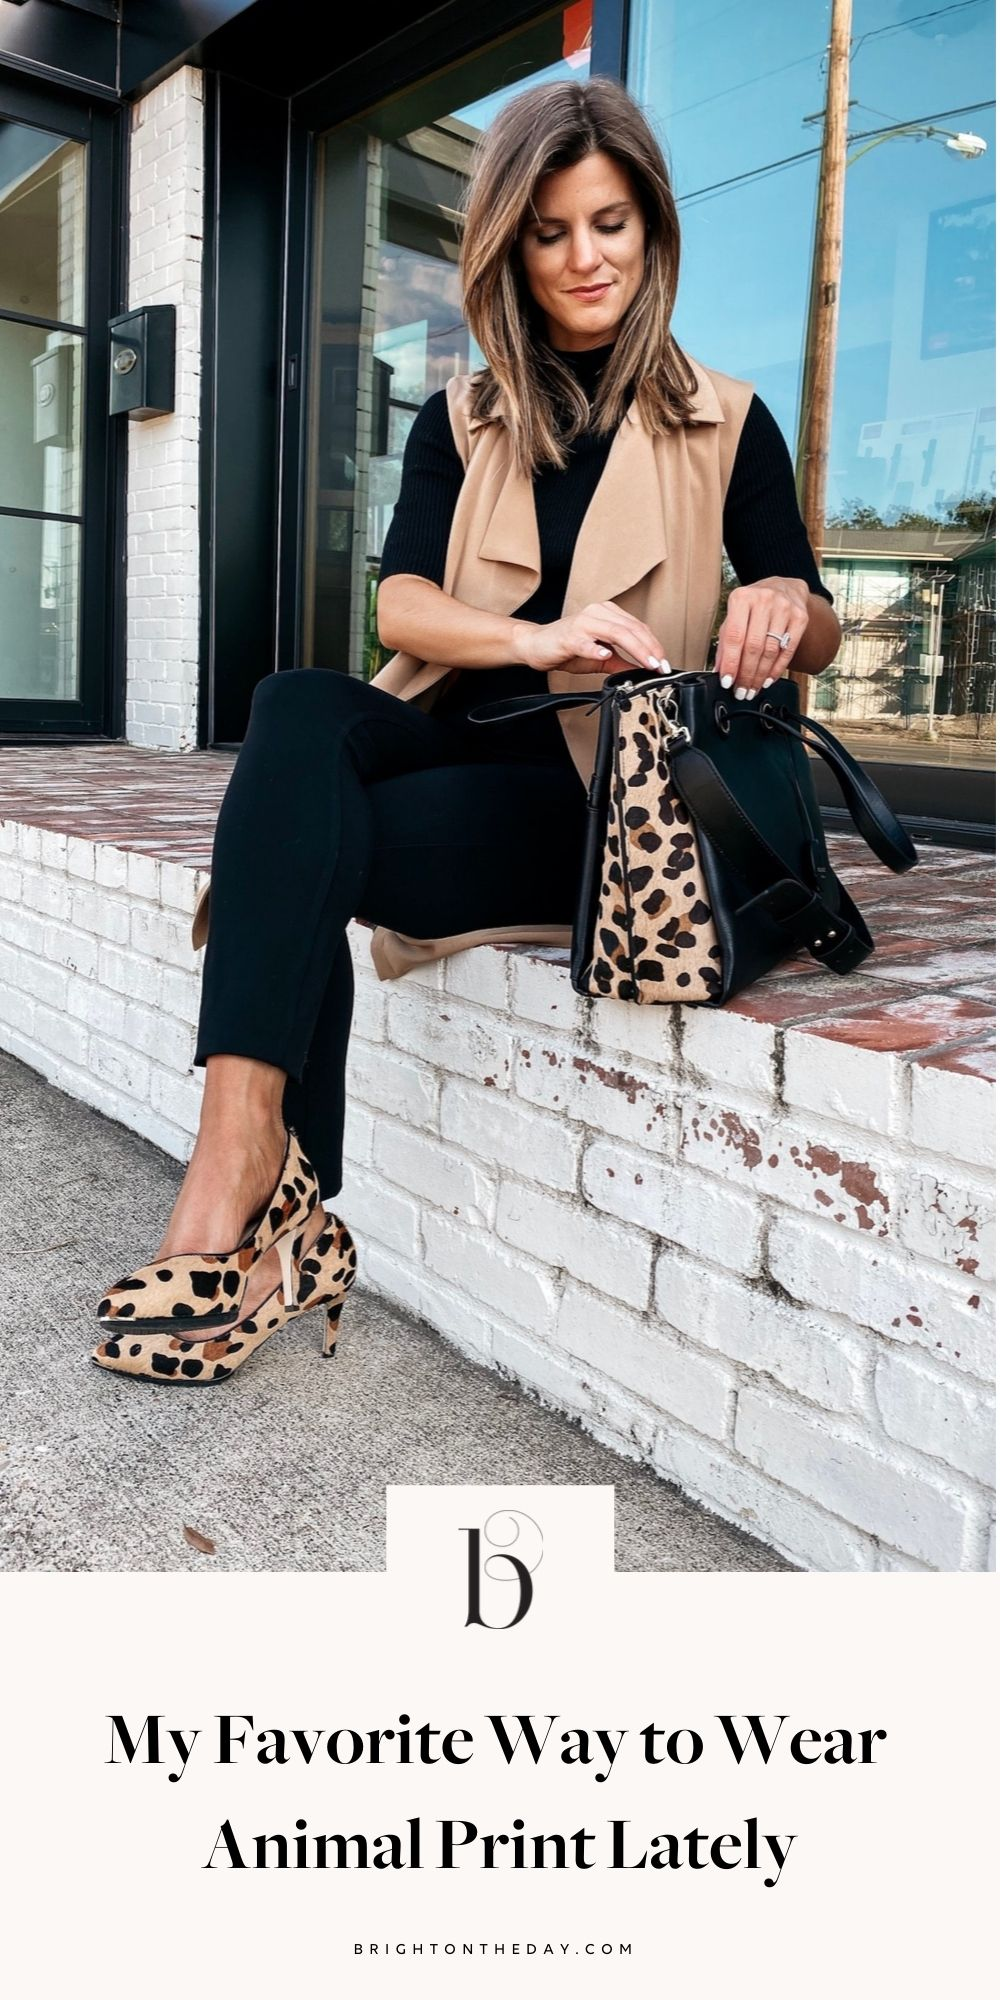 brighton keller wearing cole haan leopard pumps and purse with black pants black sweater and tan vest